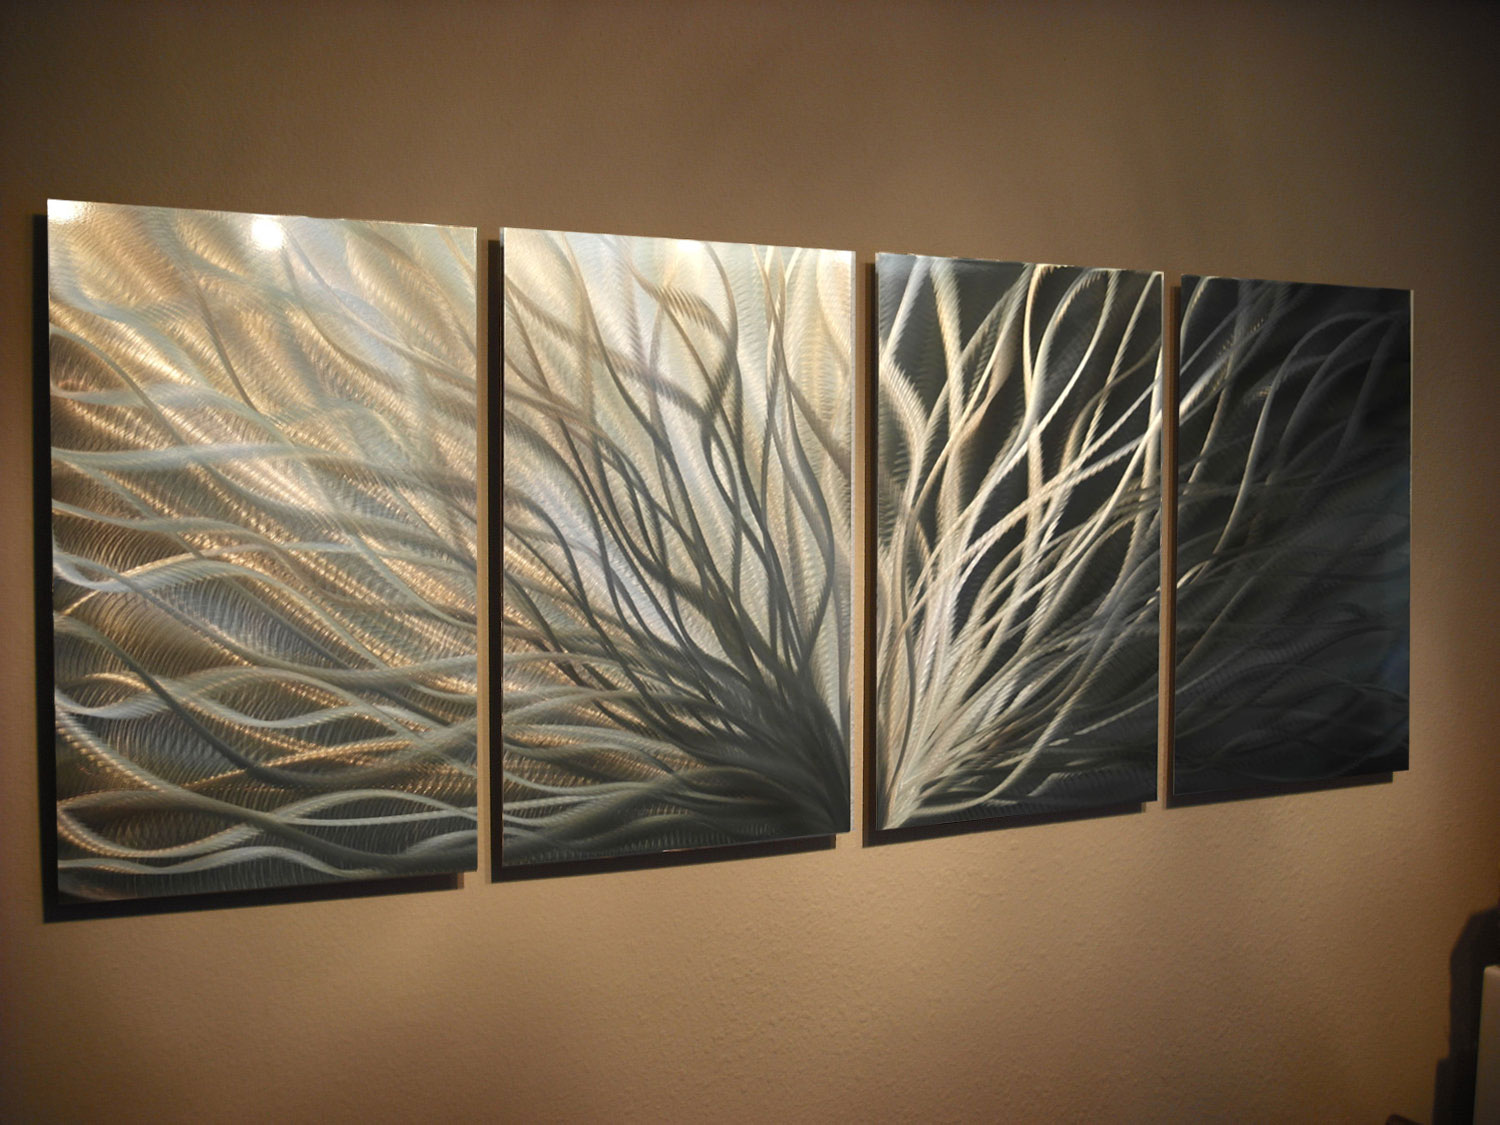 6163ced2c2f ... Abstract Metal Wall Art- Radiance Gold Silver -Contemporary Modern Decor  - Thumbnail 3